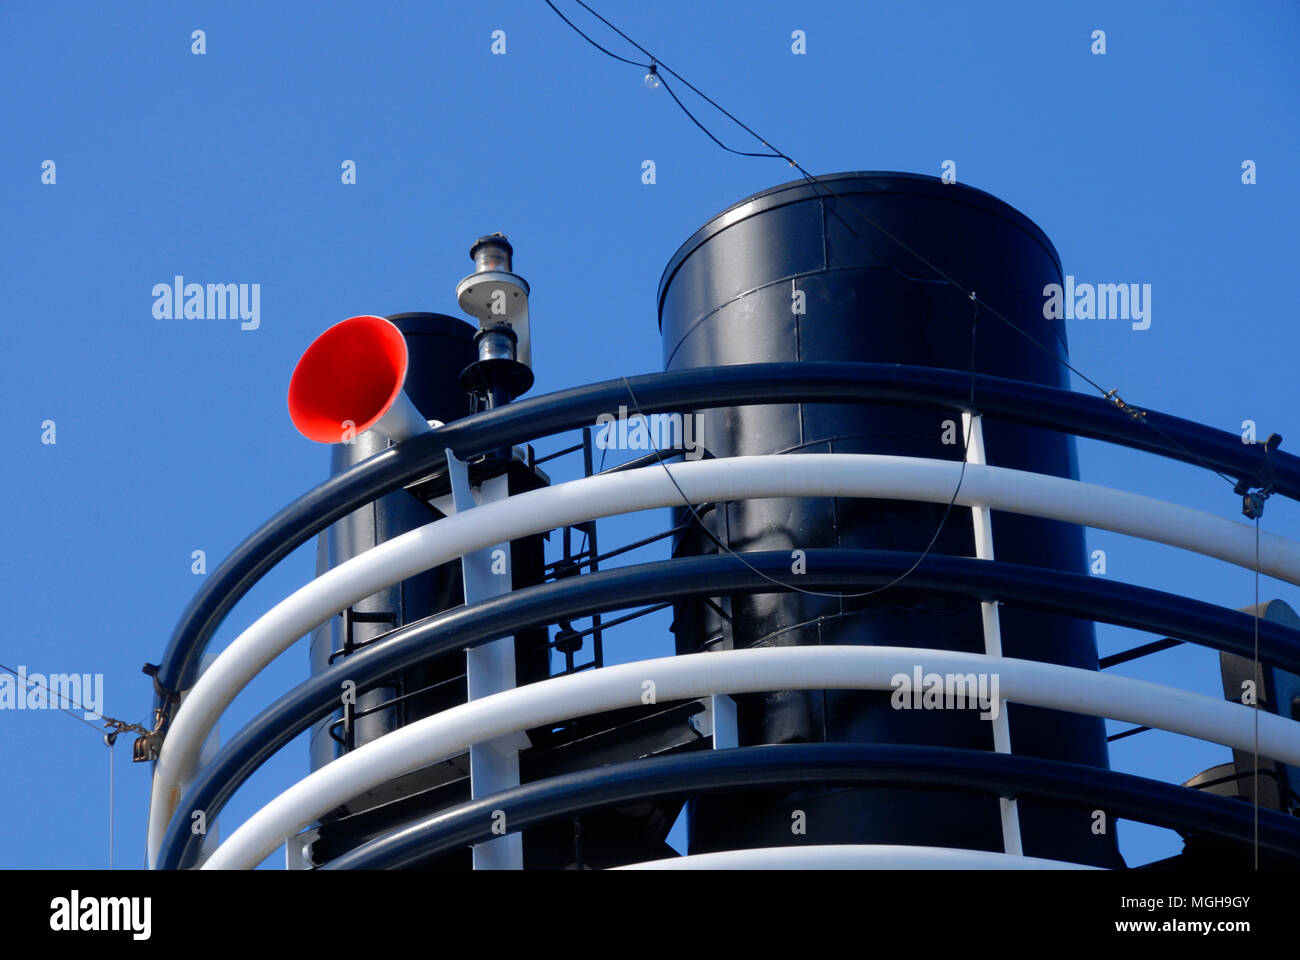 Ship's funnel and fog horn at sea - Stock Image